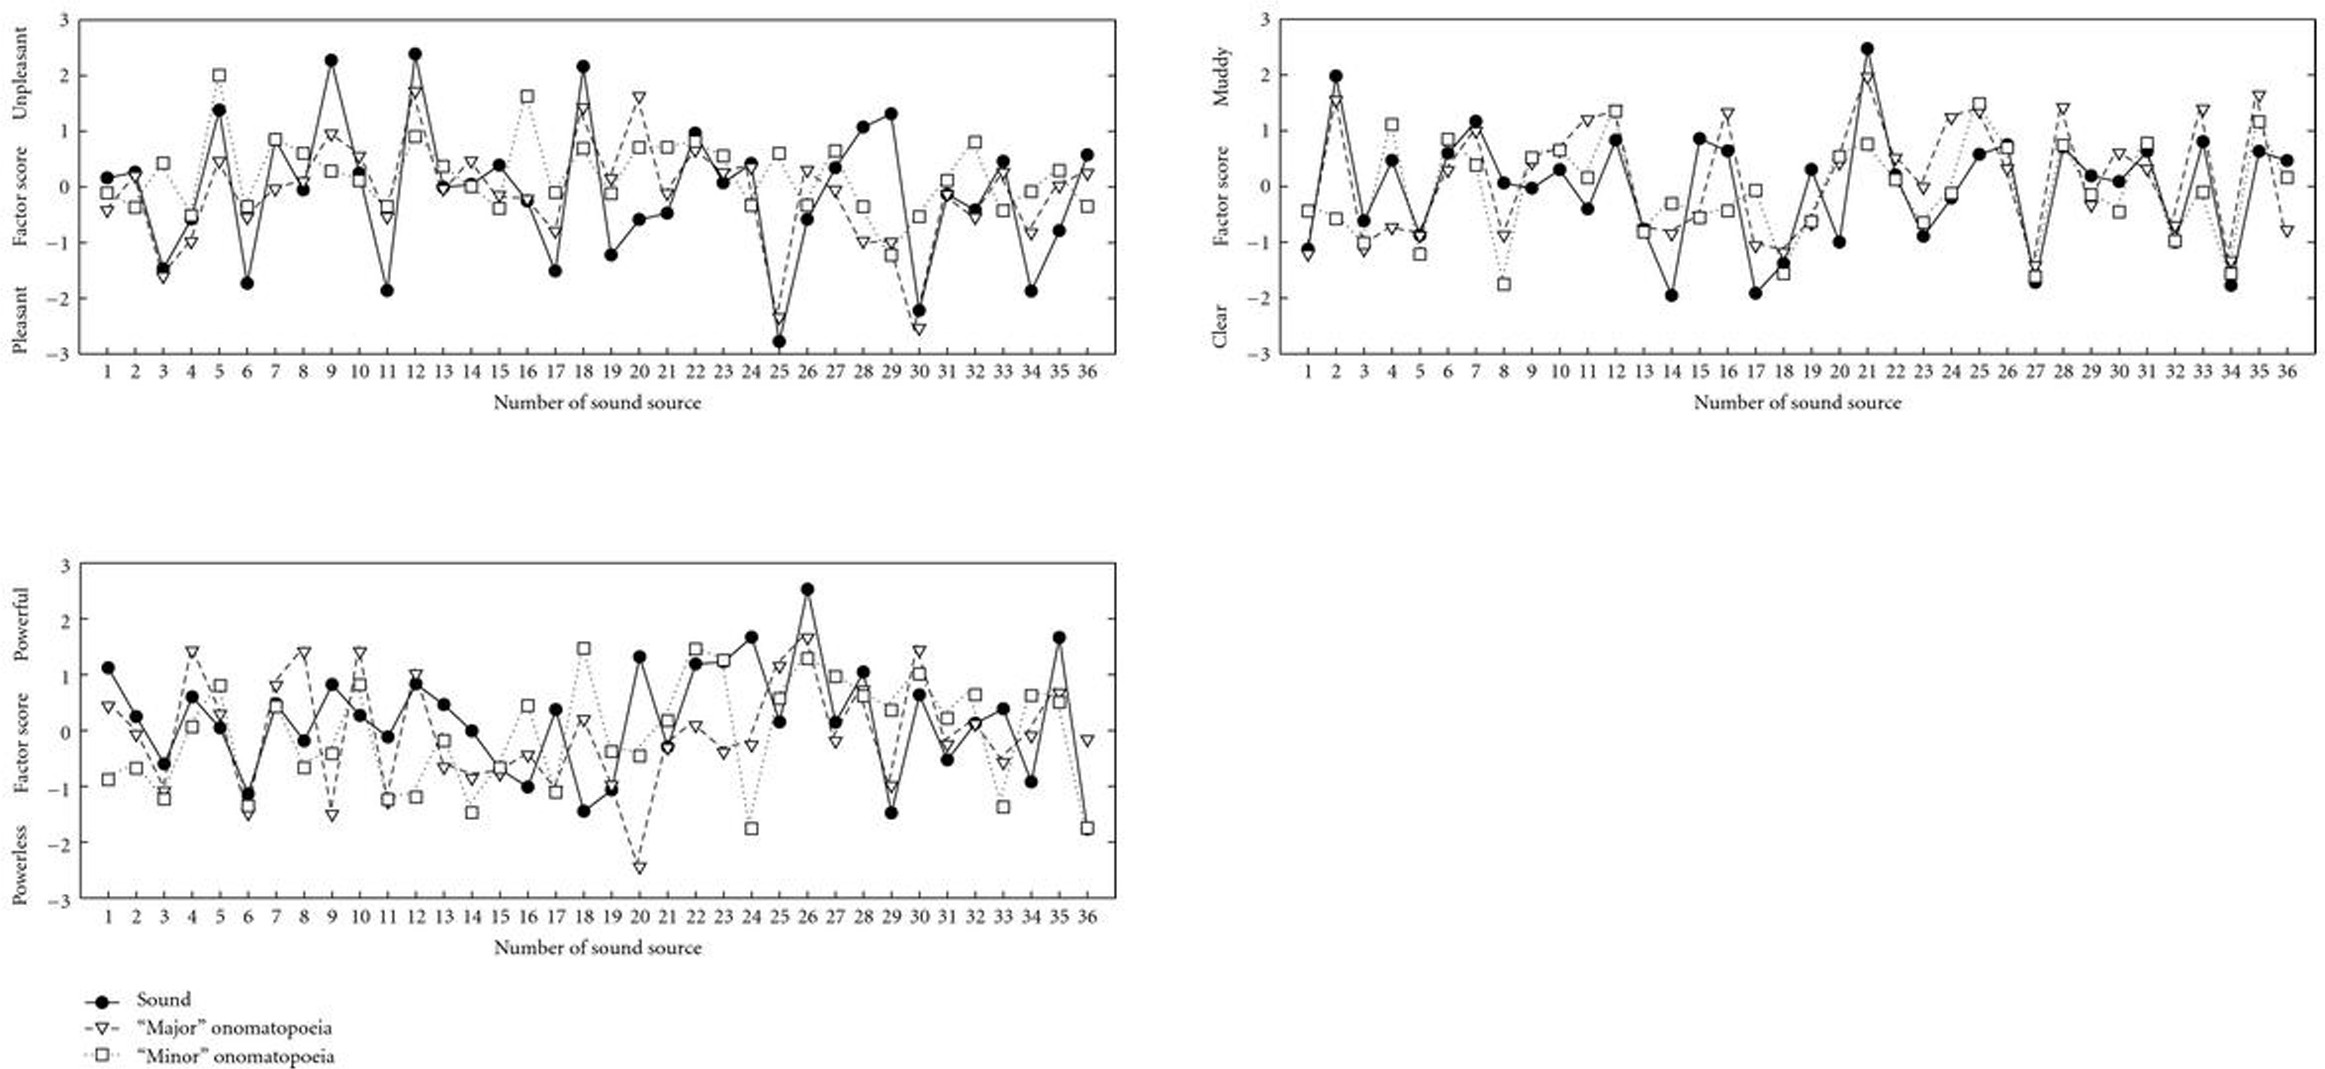 Comparisons Of Auditory Impressions And Auditory Imagery Associated